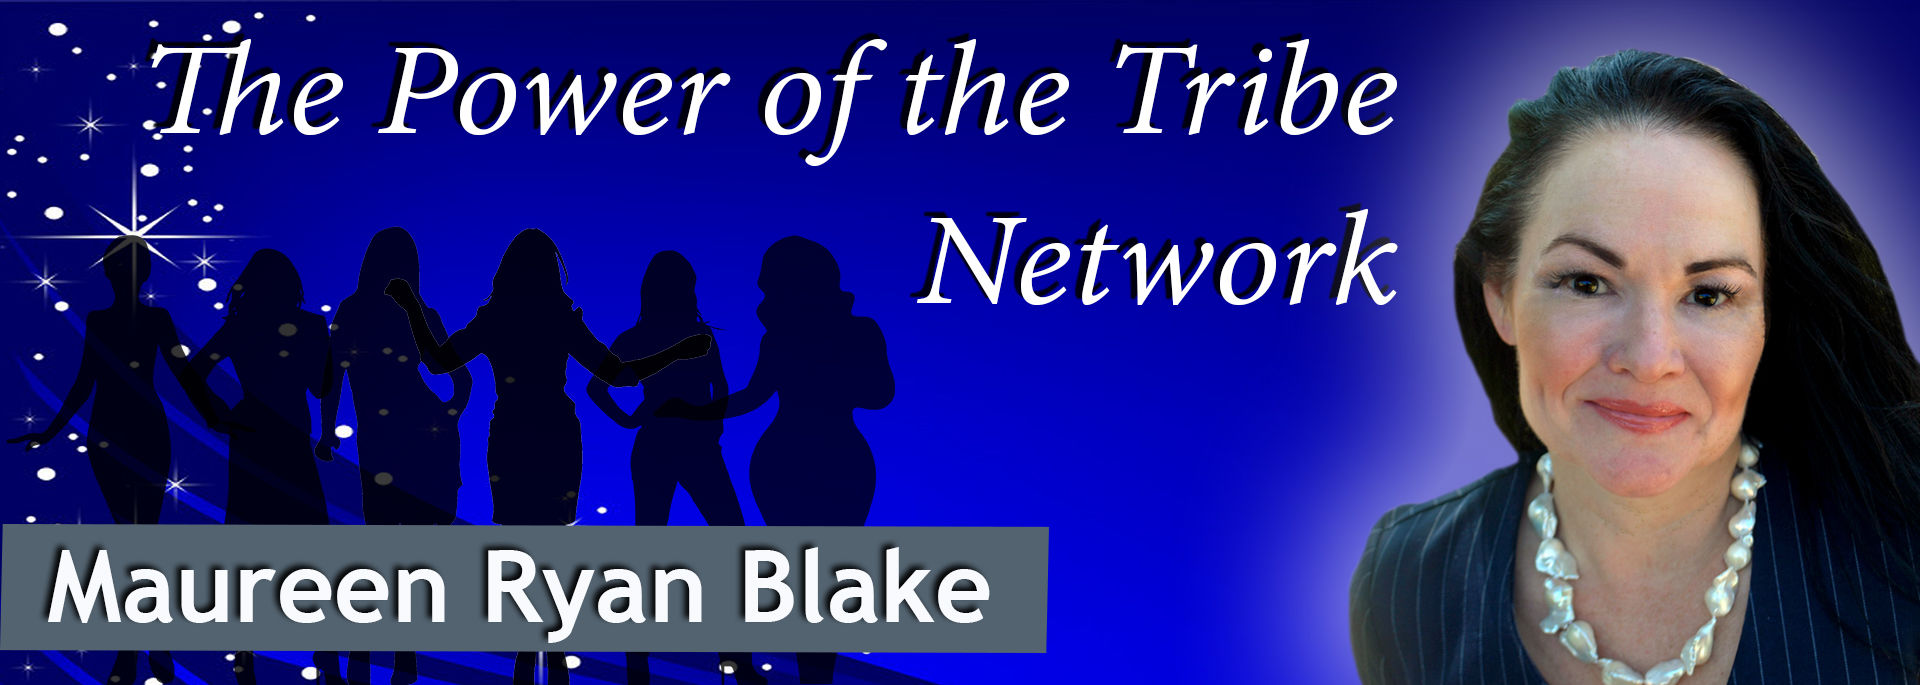 The Power of the Tribe Network channel